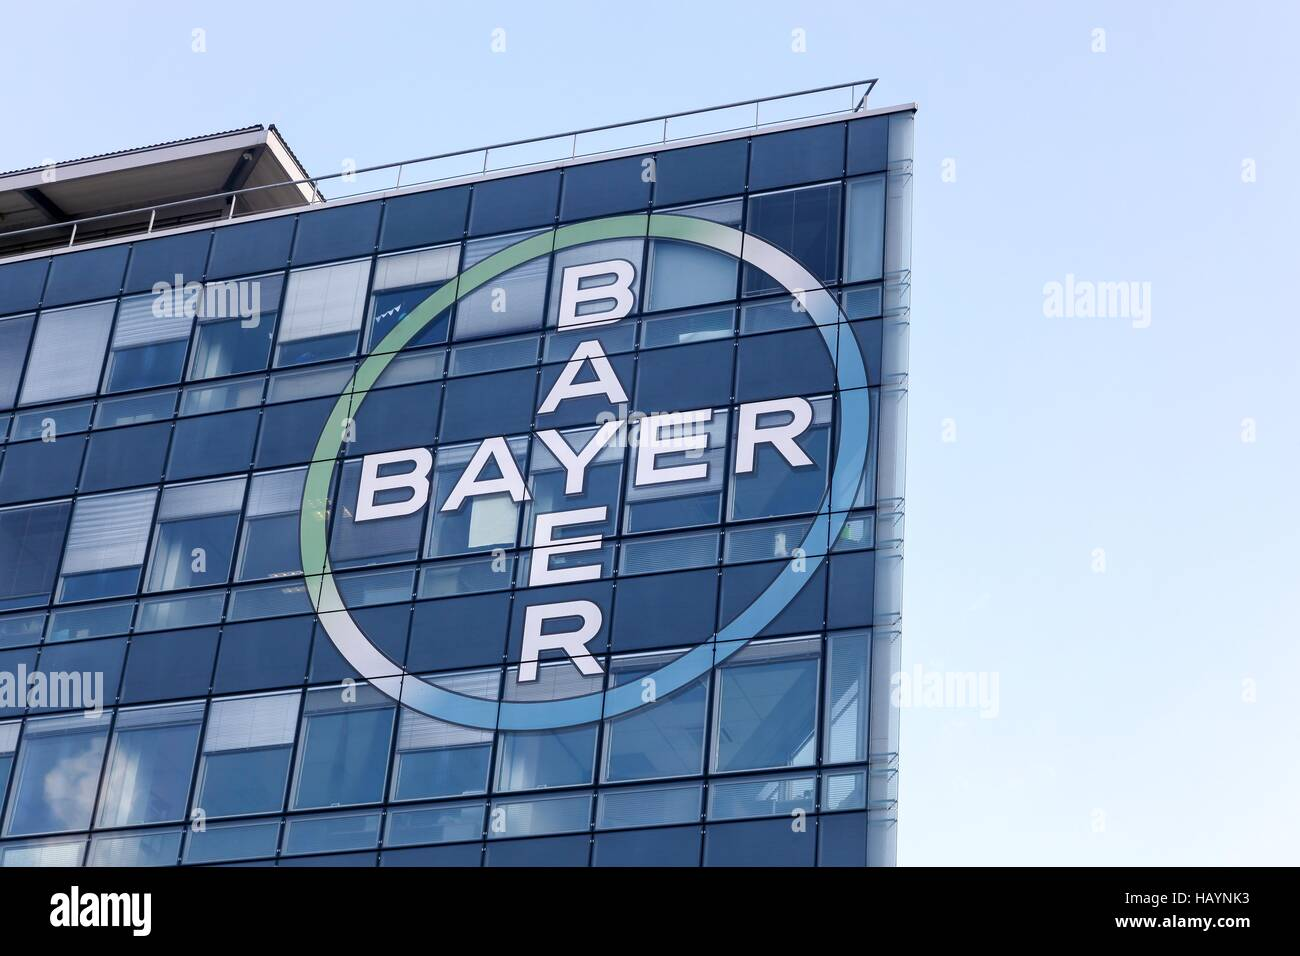 Bayer building and office - Stock Image